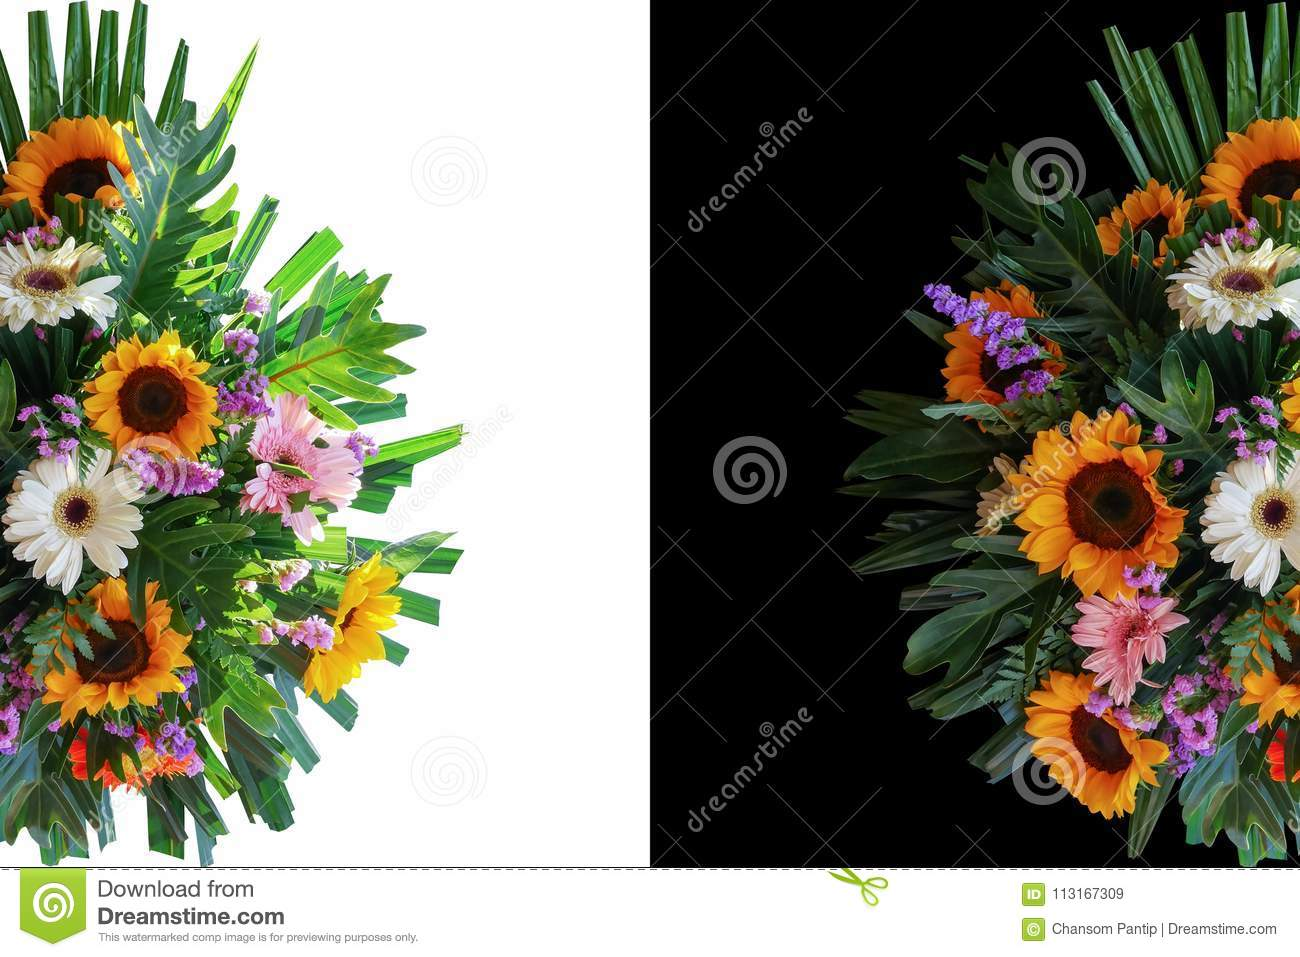 Sunflowers and gerbera daisies flower arrangement with fern phi sunflowers and gerbera daisies flower arrangement with fern phi izmirmasajfo